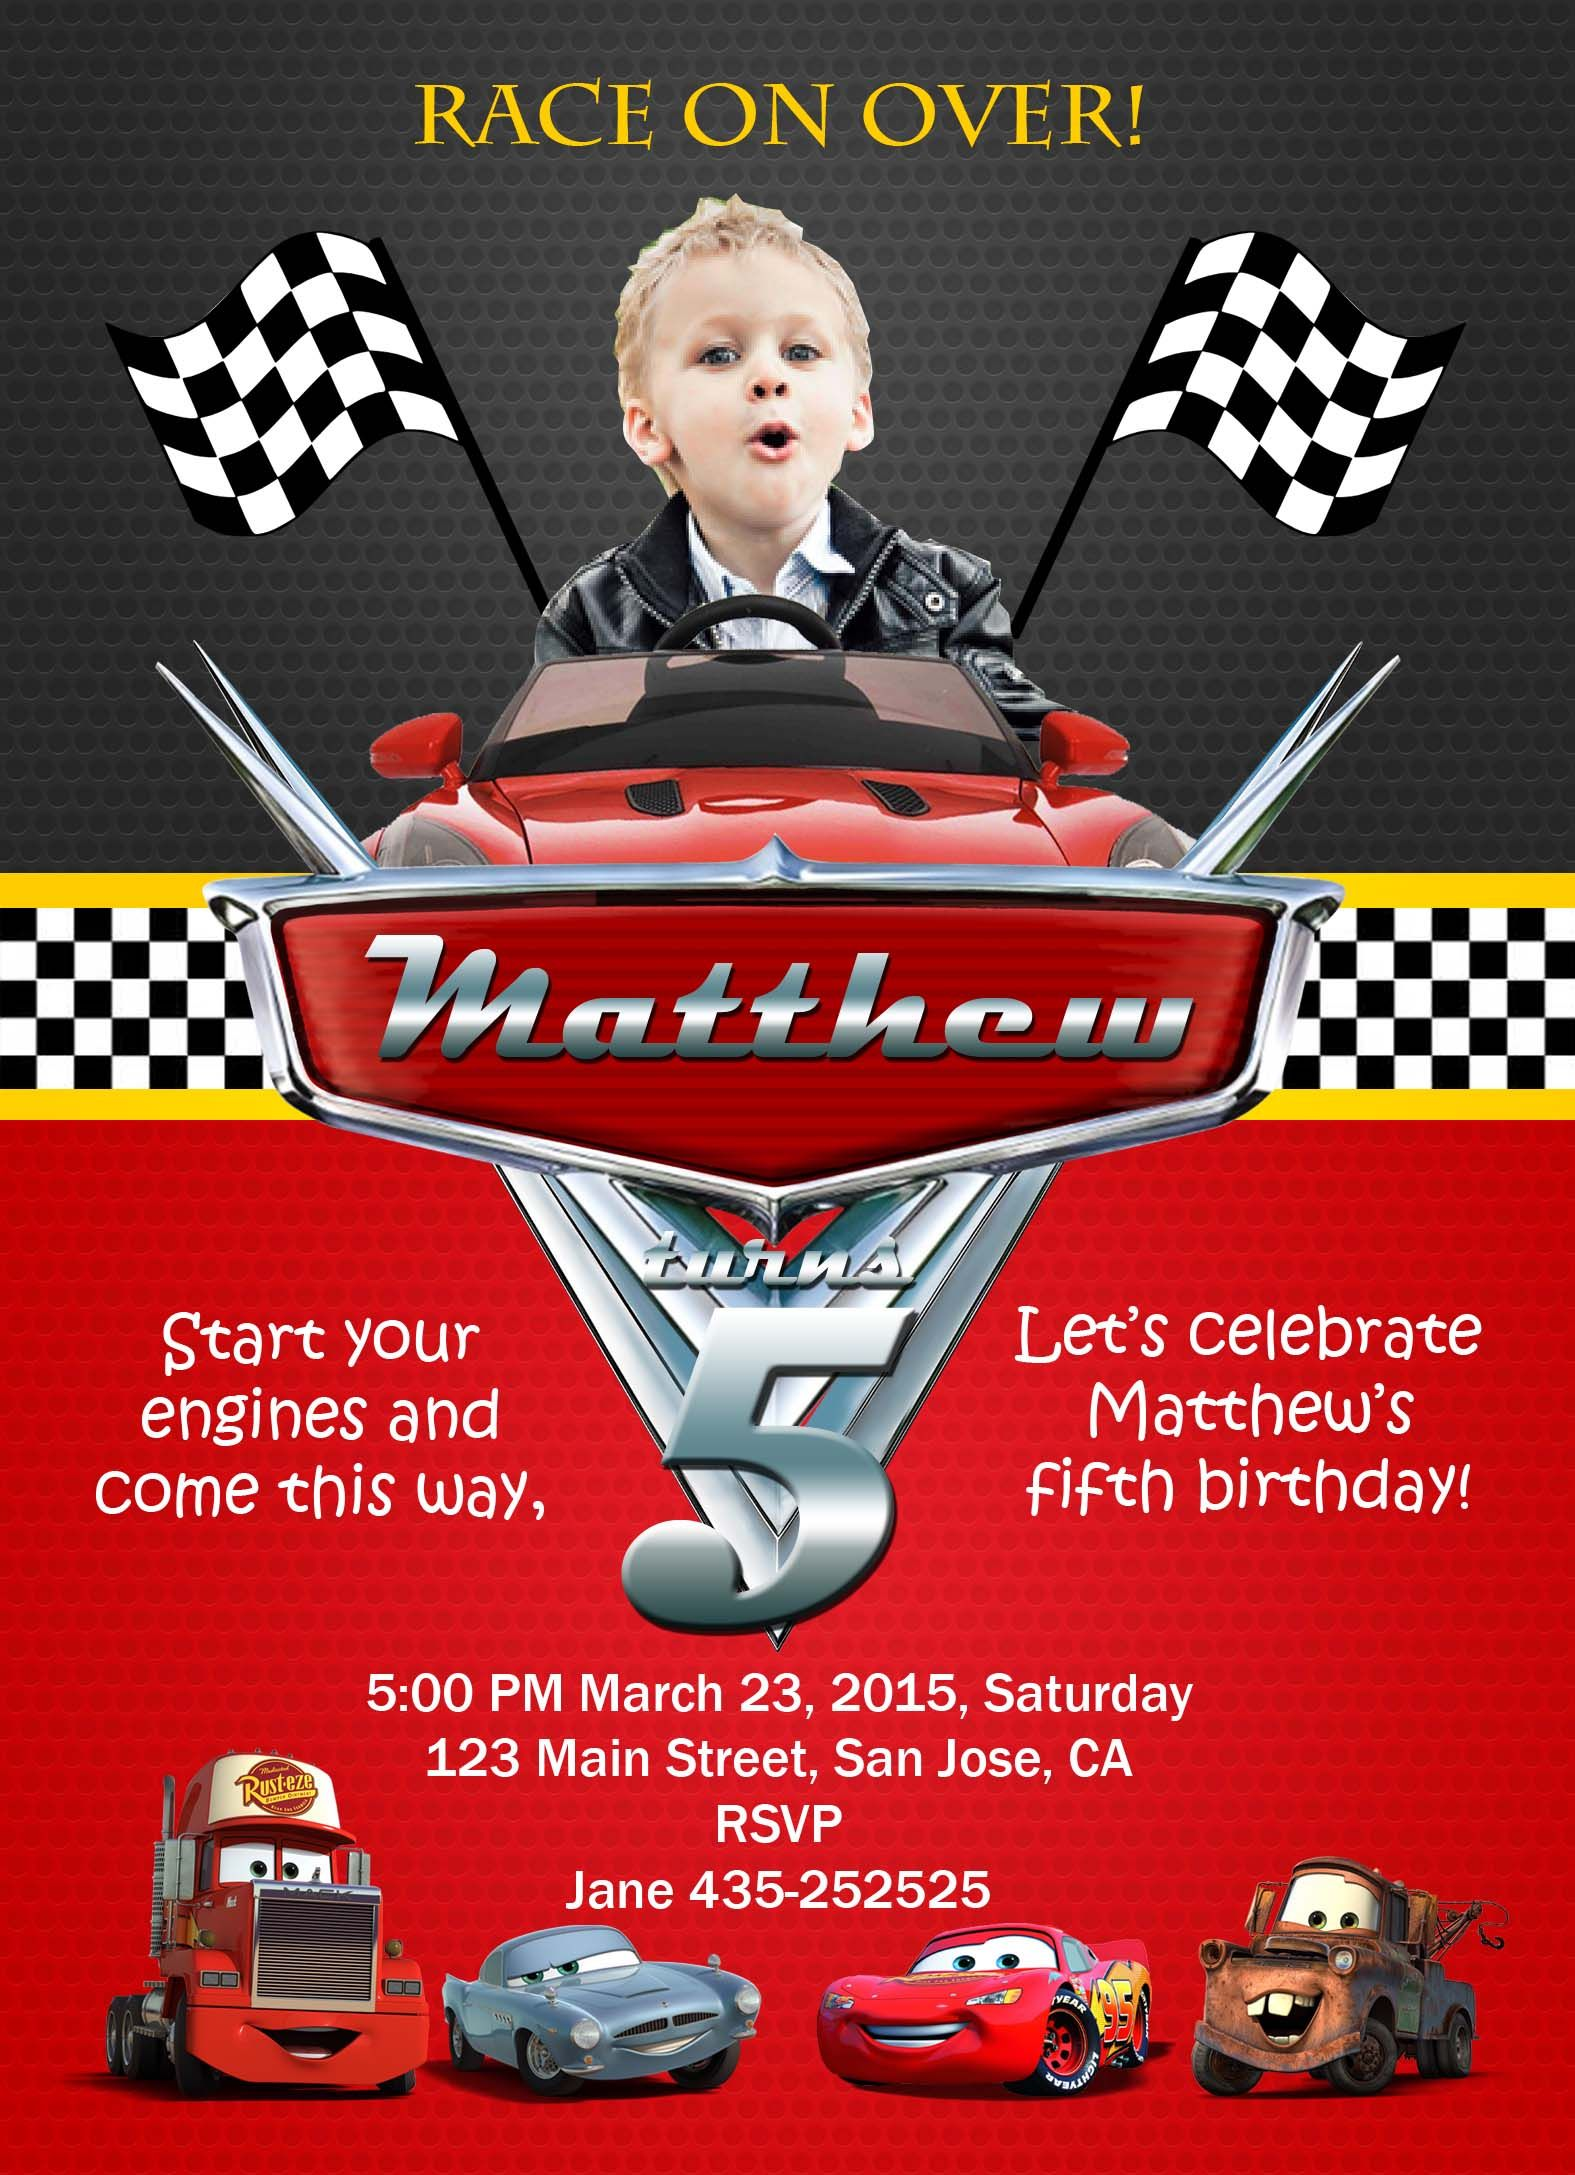 cars themed birthday invitations - Kubre.euforic.co